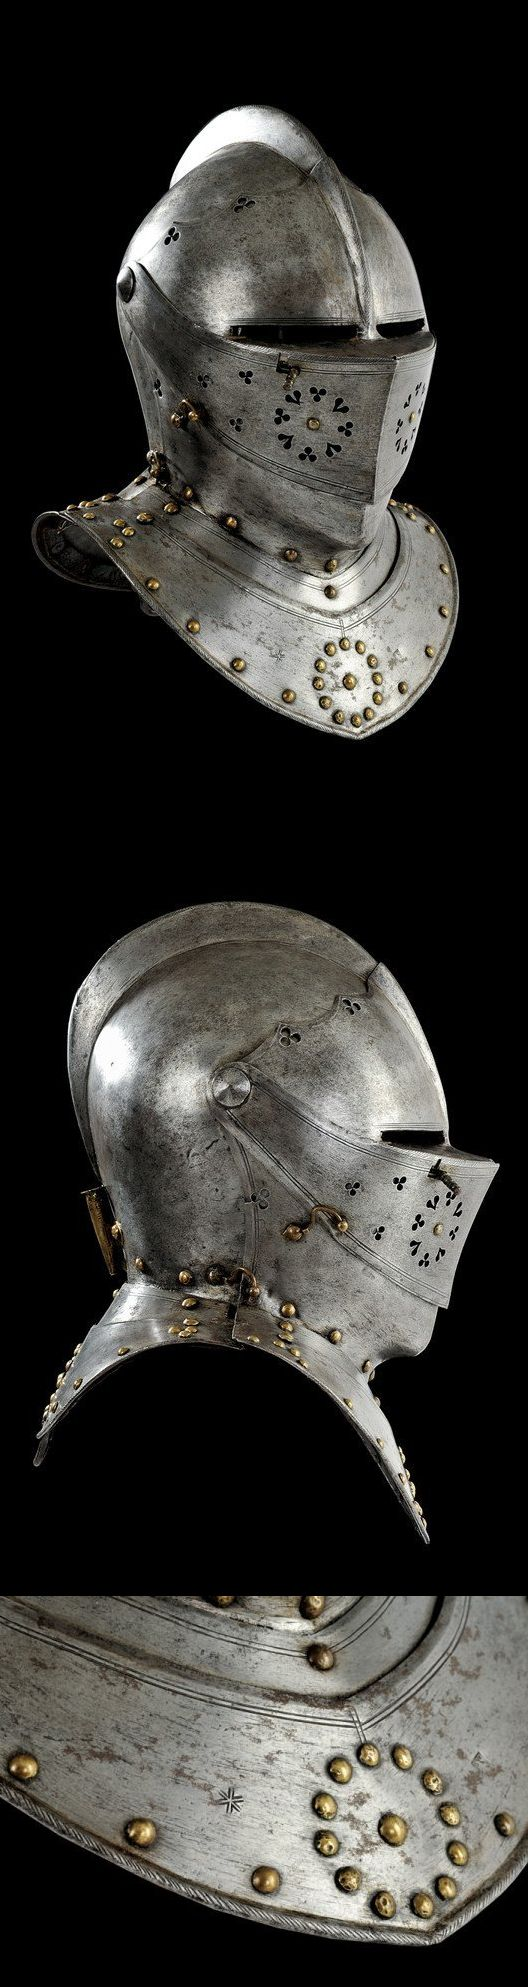 A Nuremberg combat close-helmet, Germany, 1600.